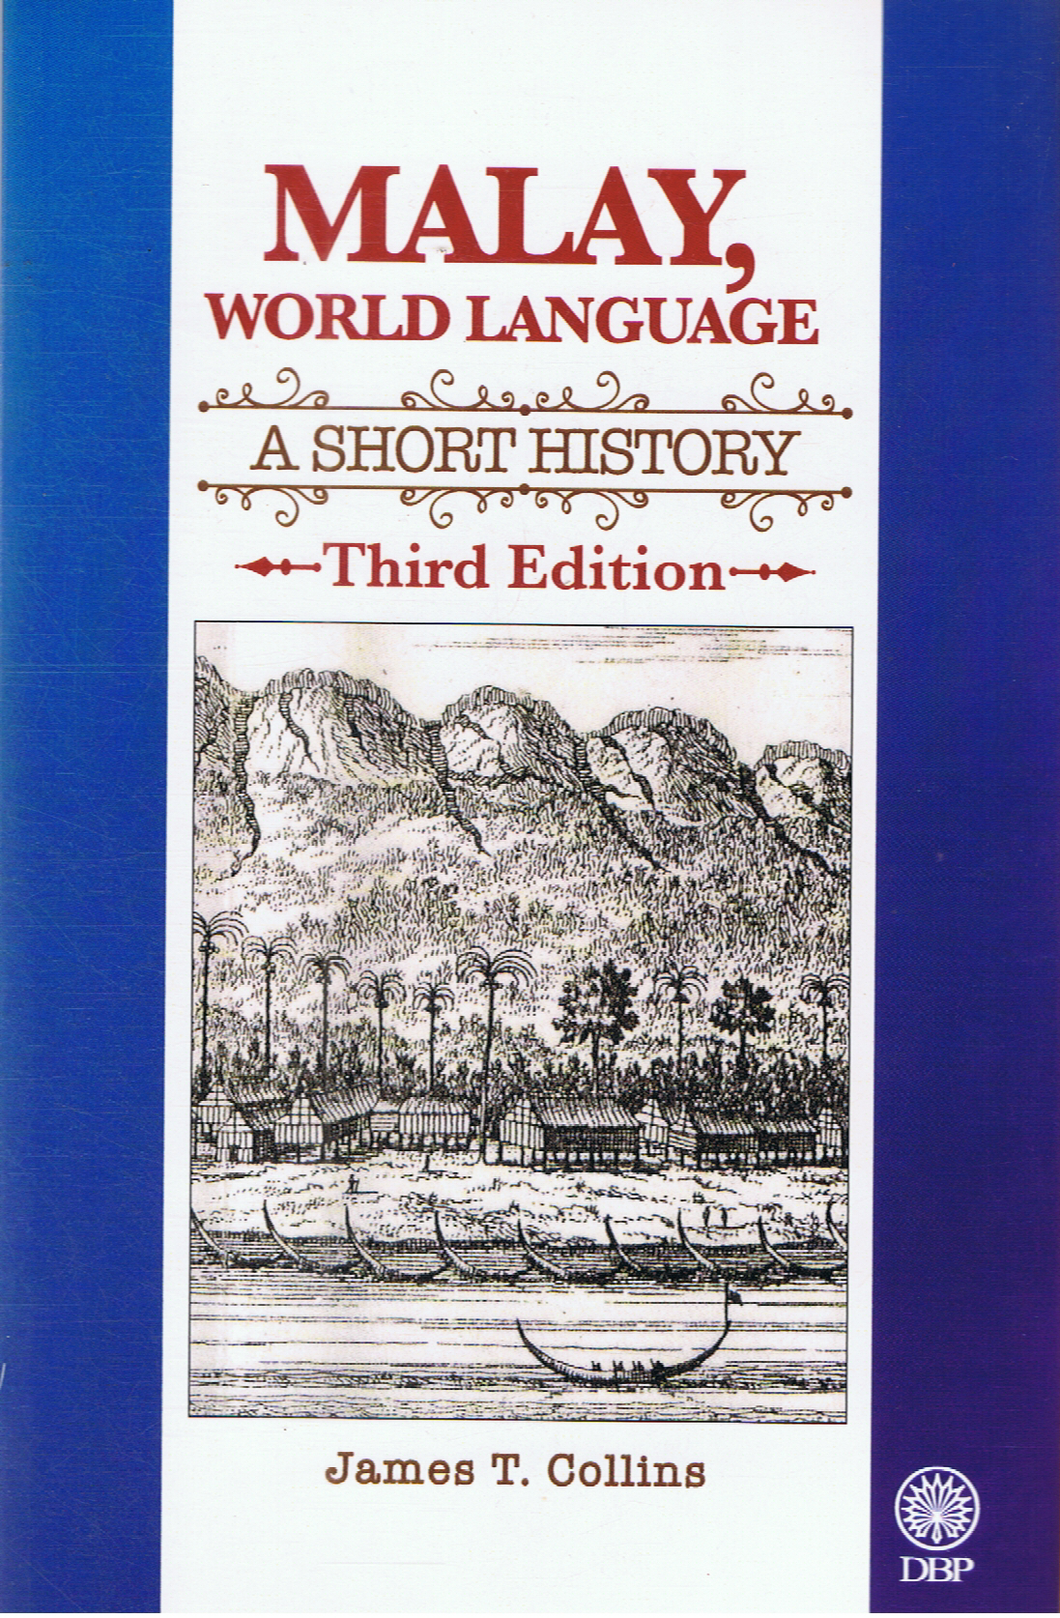 Malay World Language: A Short History Third Edition